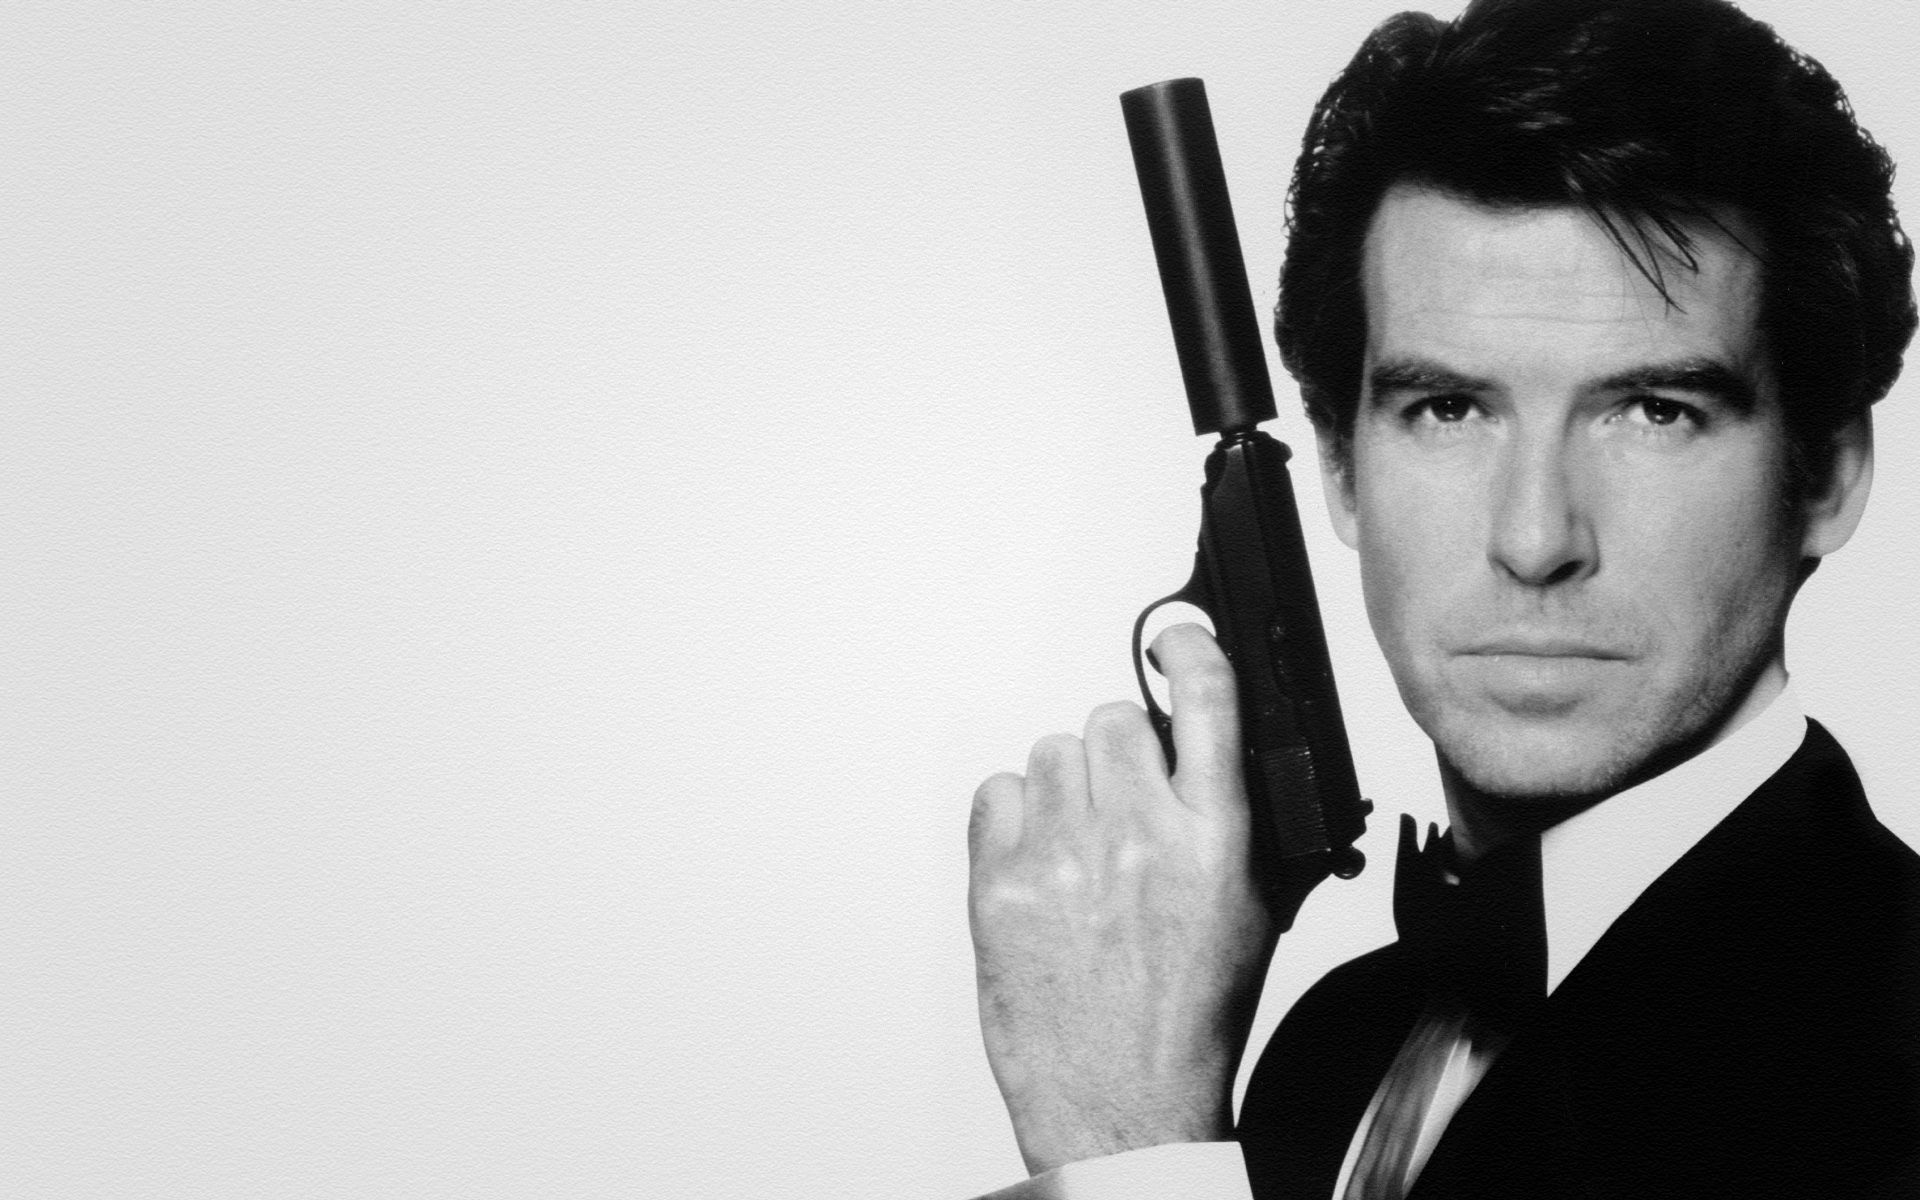 pierce brosnan james bond 50 years of James Bond